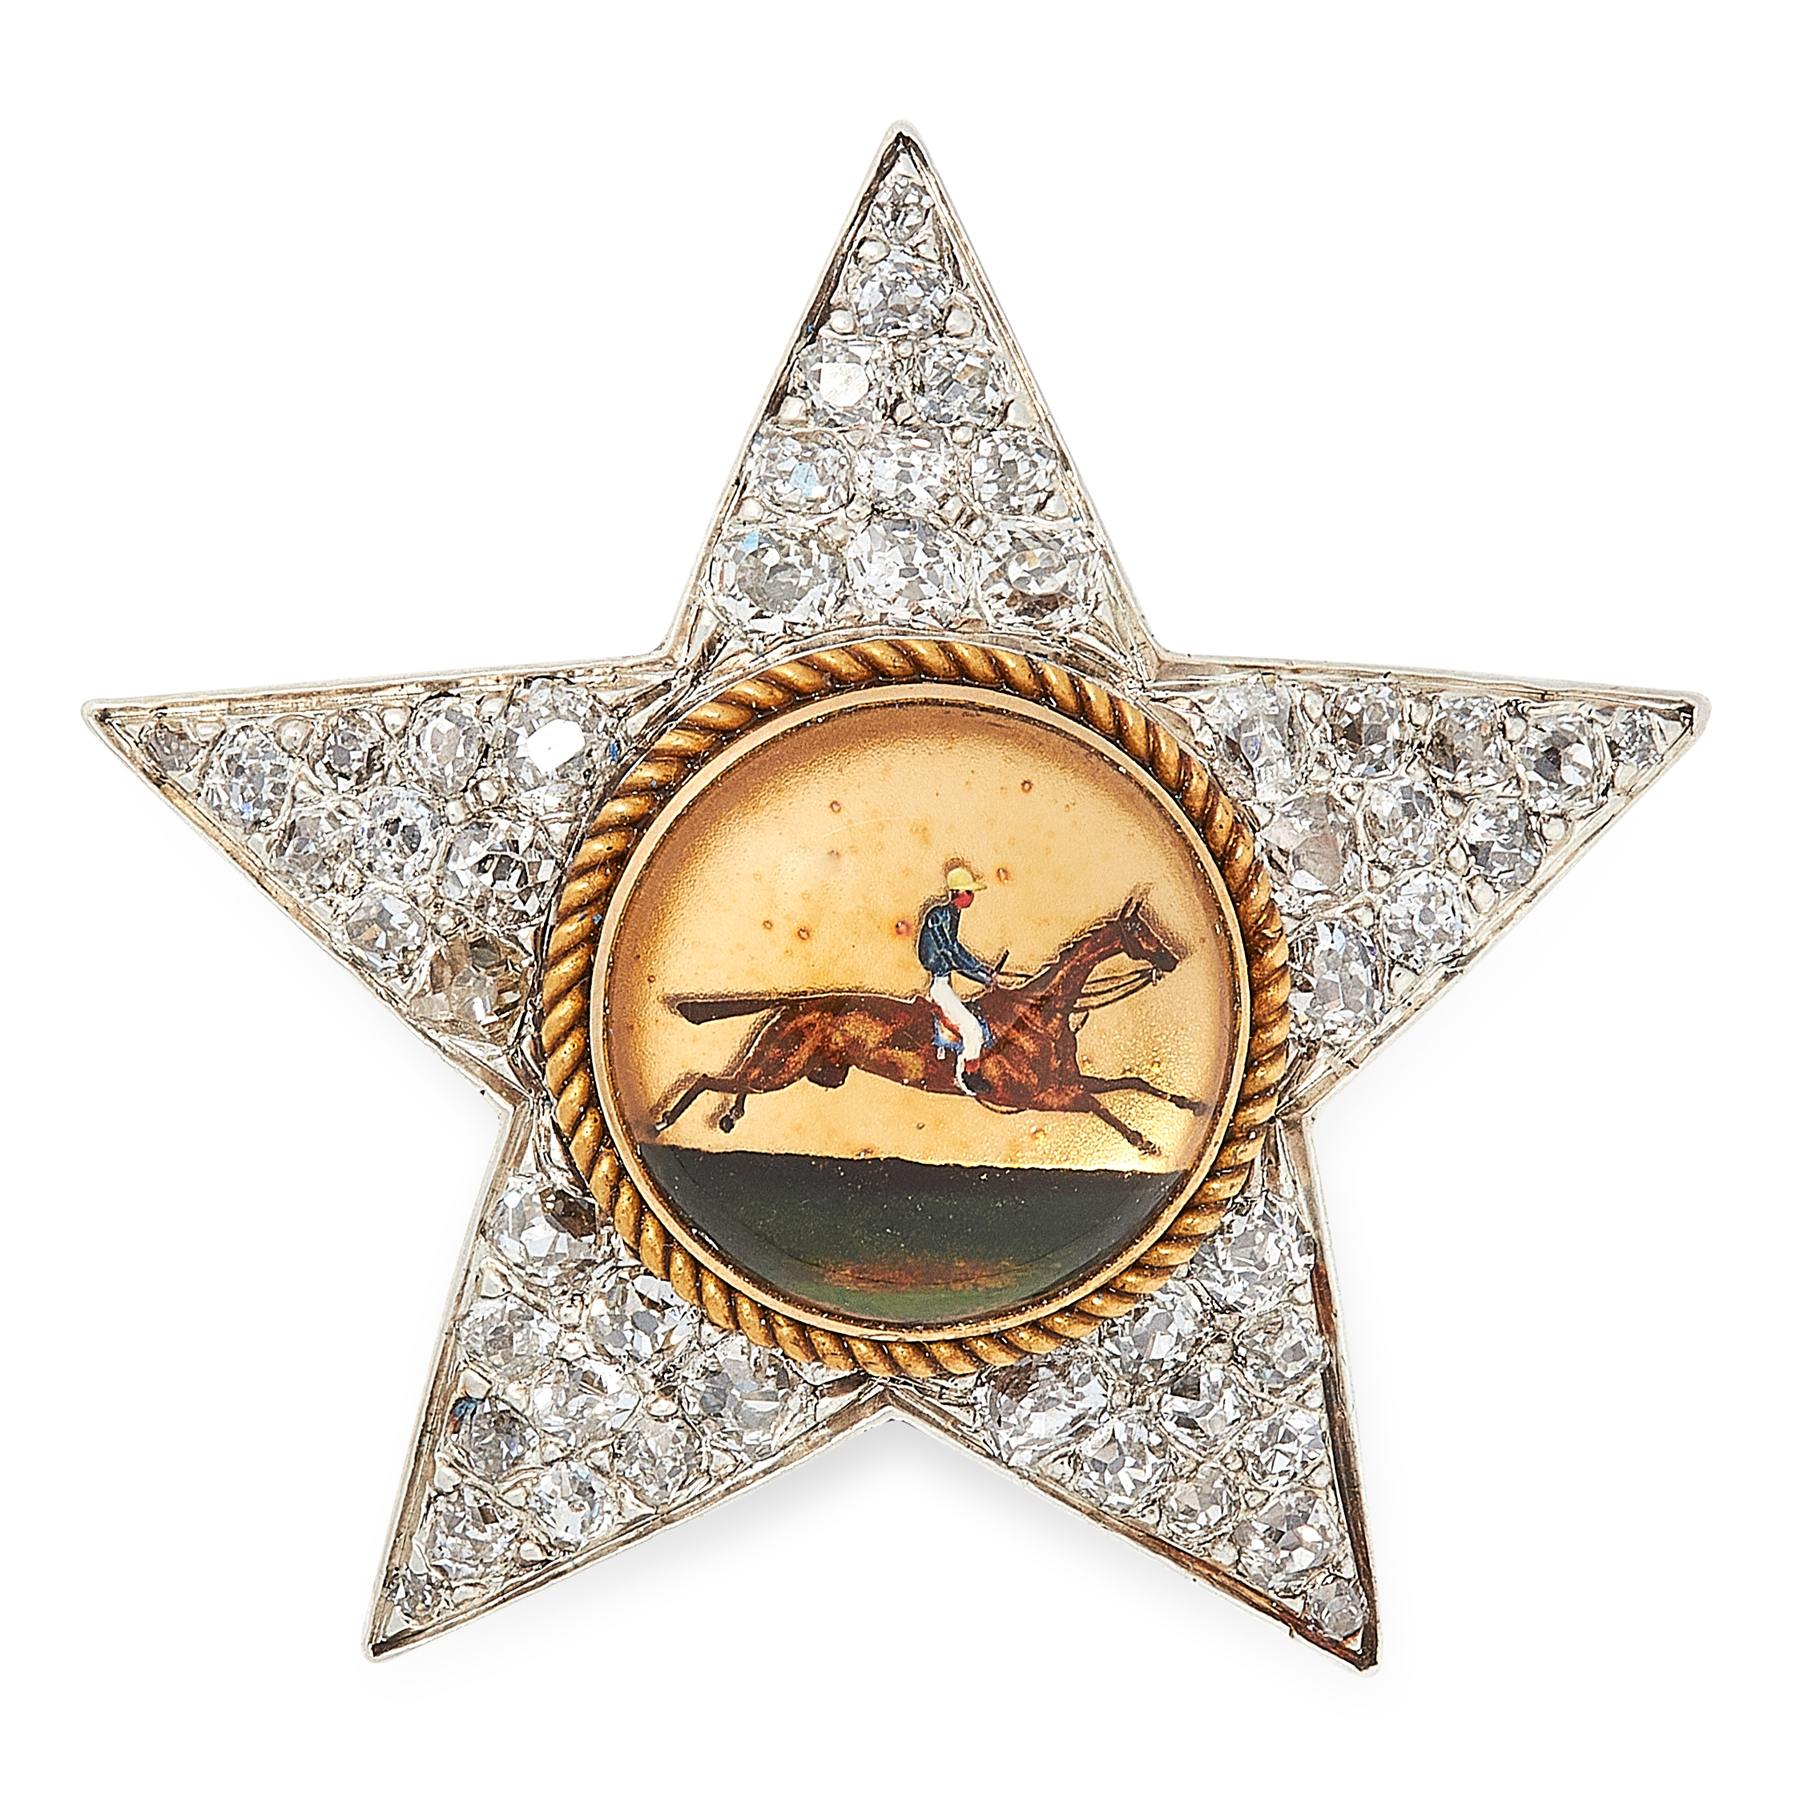 Lot 5 - AN ANTIQUE REVERSE CARVED INTAGLIO AND DIAMOND BROOCH in yellow gold and silver, designed as a star,